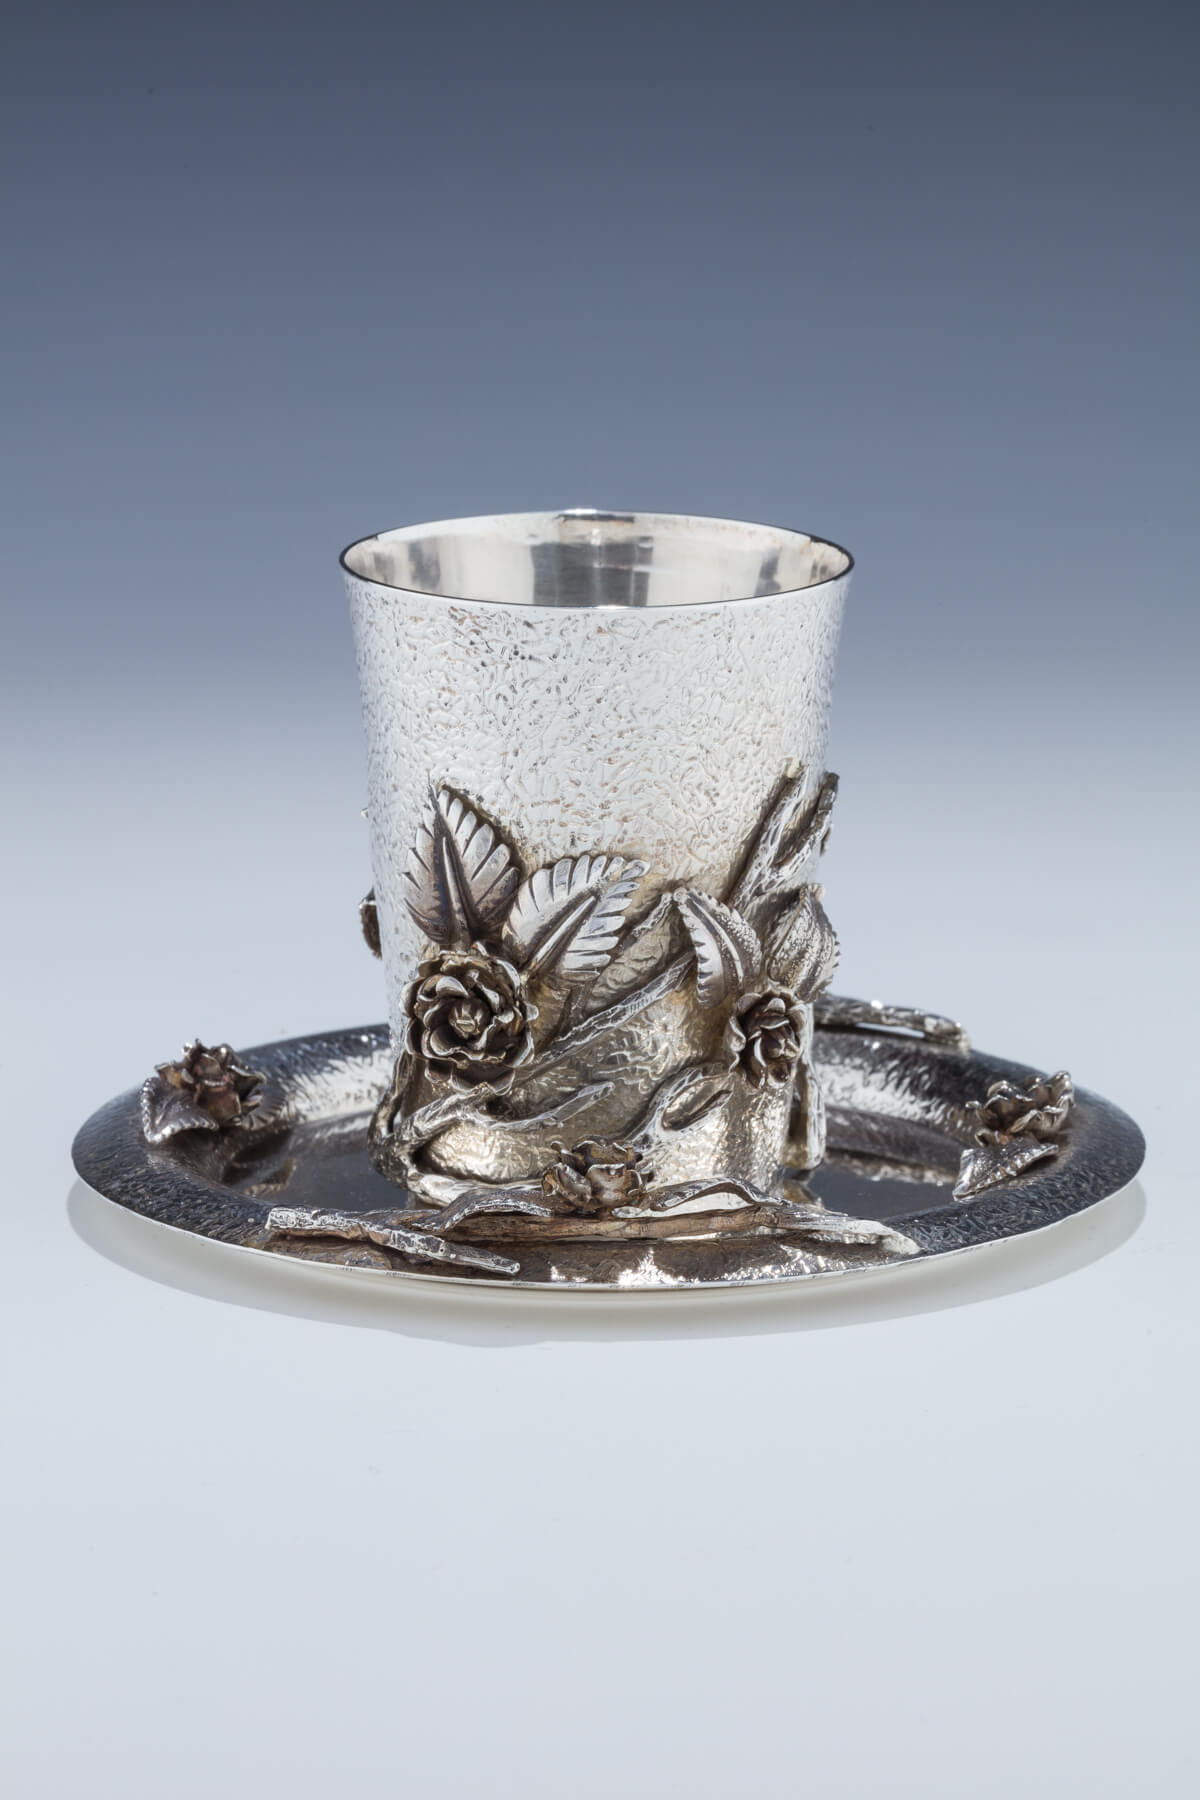 150. A Silver Kiddush Cup and Underplate by Hershel Pikkar